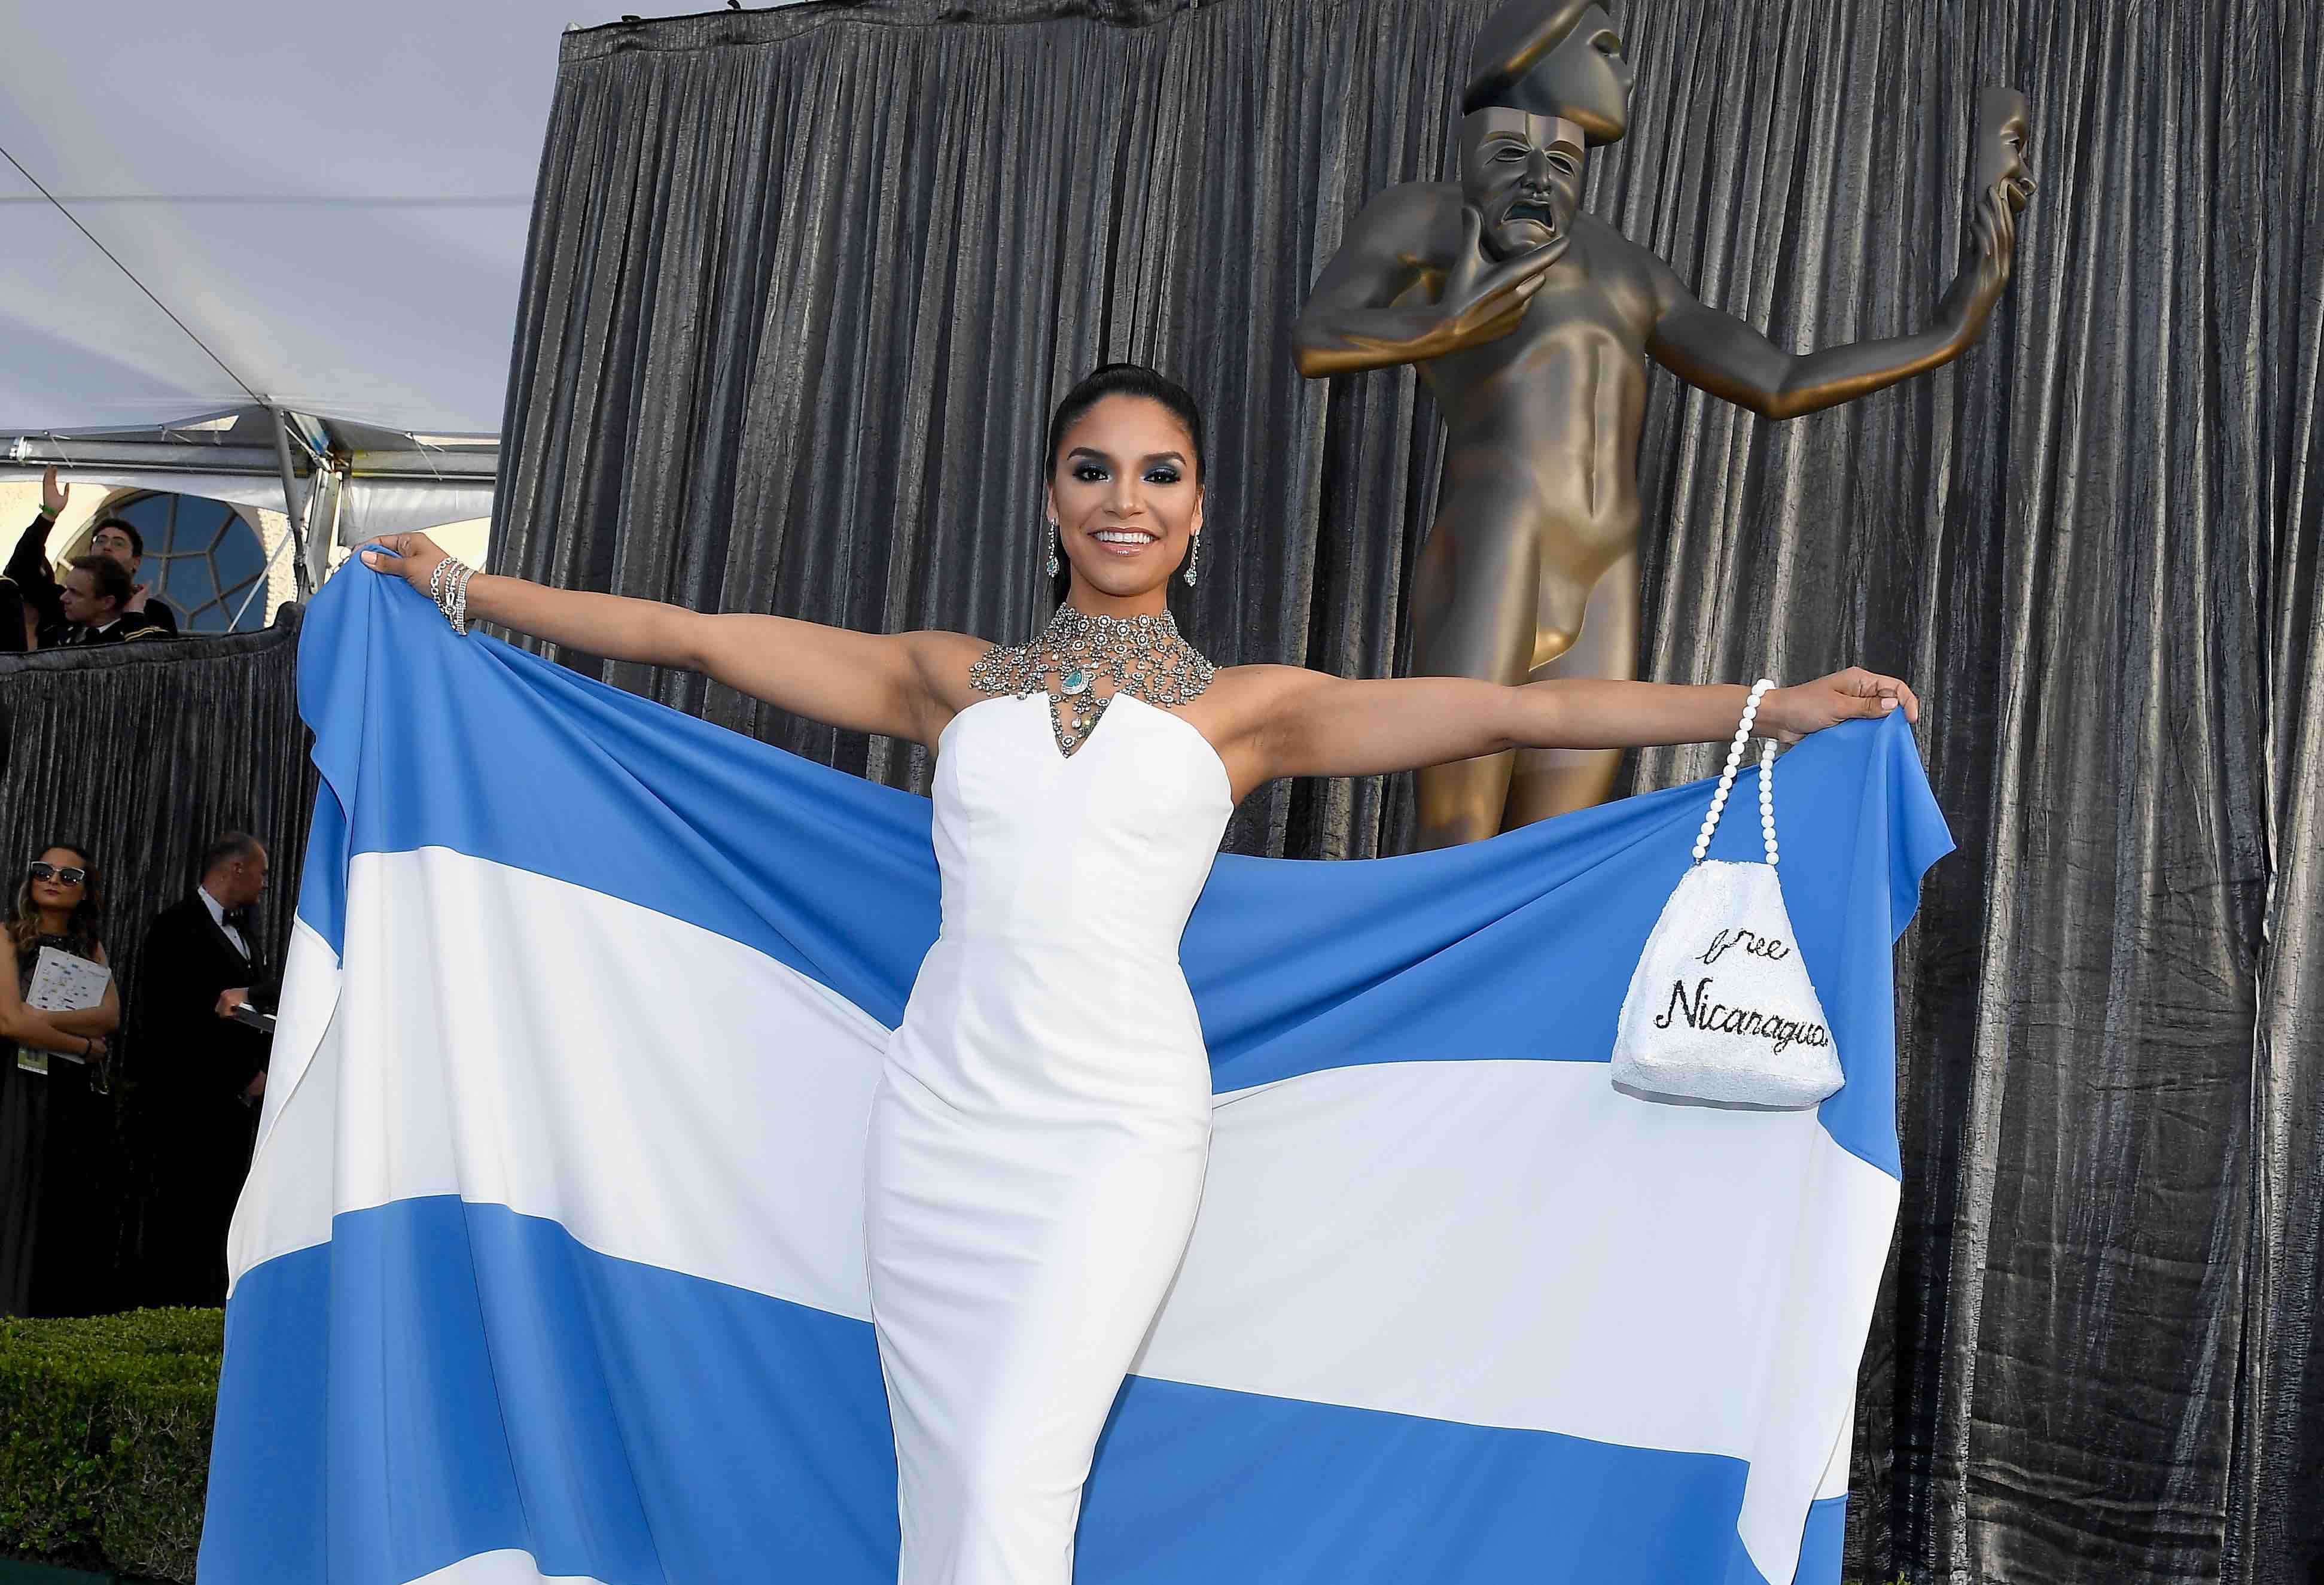 Shakira Barrera: Why I Hope You'll Join Me at This Gala to Benefit Nicaraguan Refugees